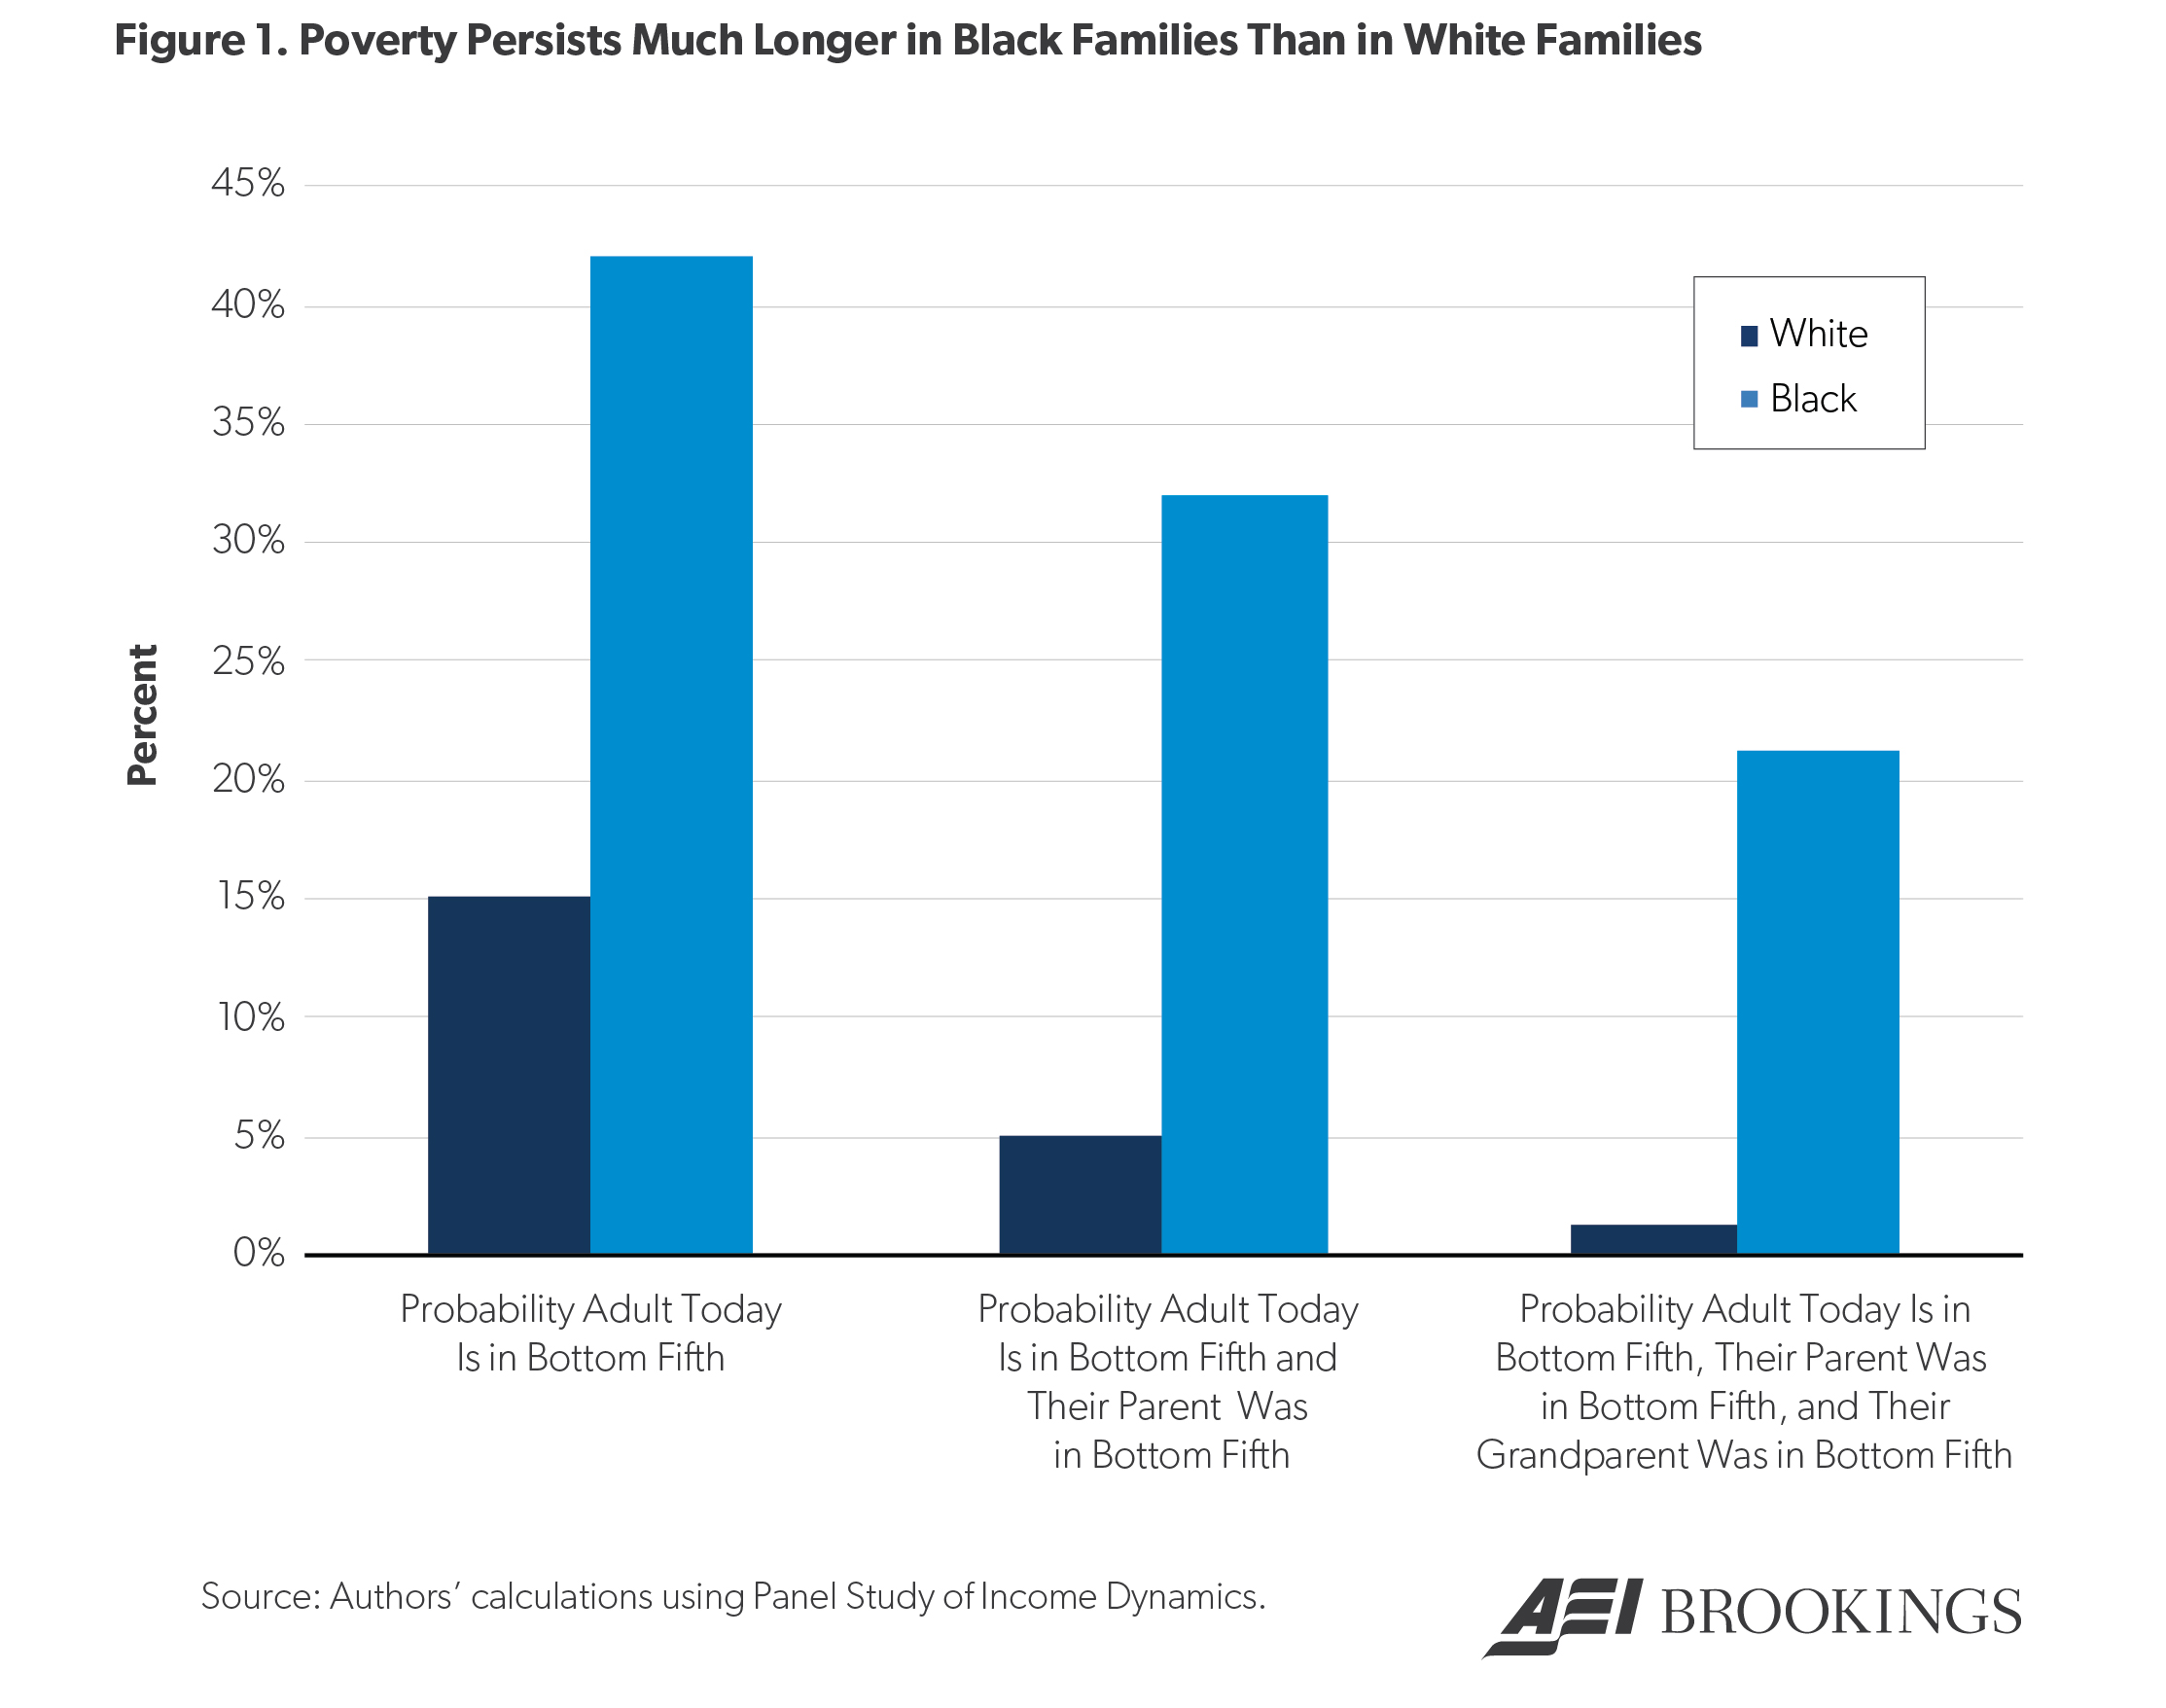 Bar graph showing poverty persistence in Black and White families